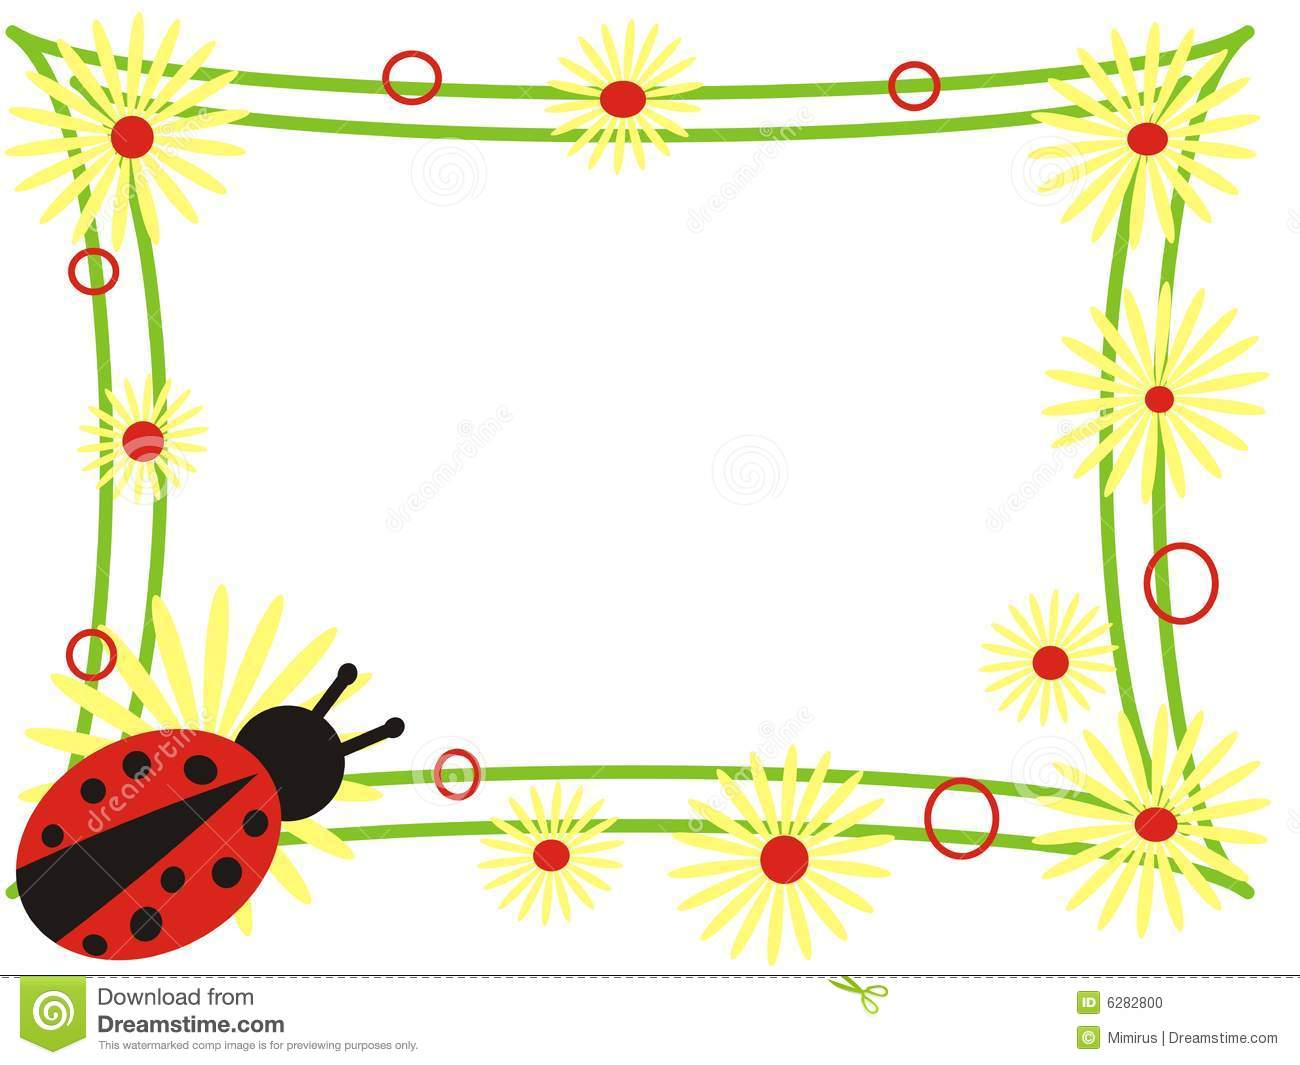 Ladybug frame stock illustration. Illustration of garden - 6282800